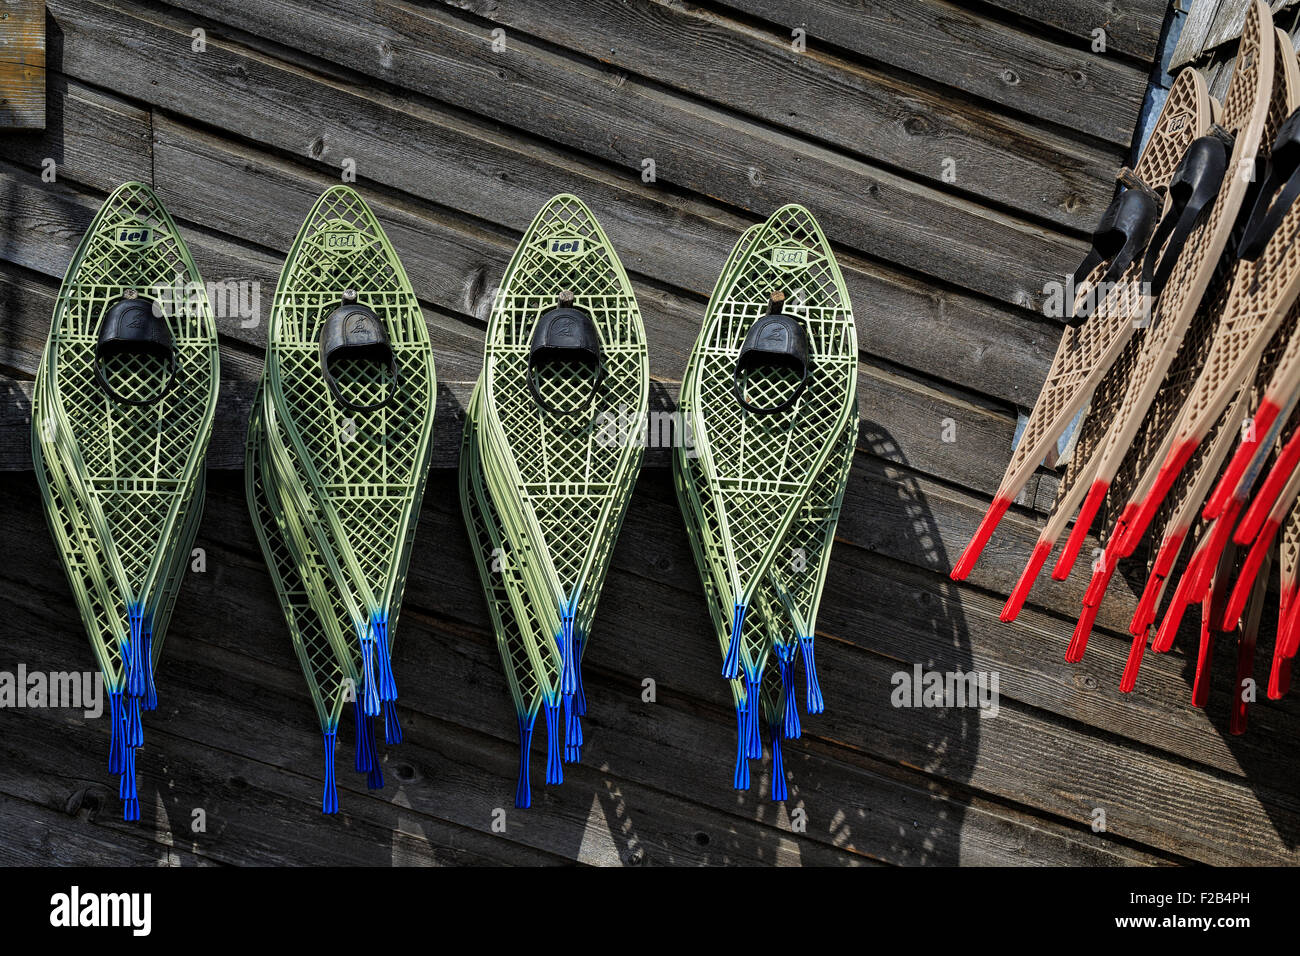 Snowshoes hanging on wall. - Stock Image